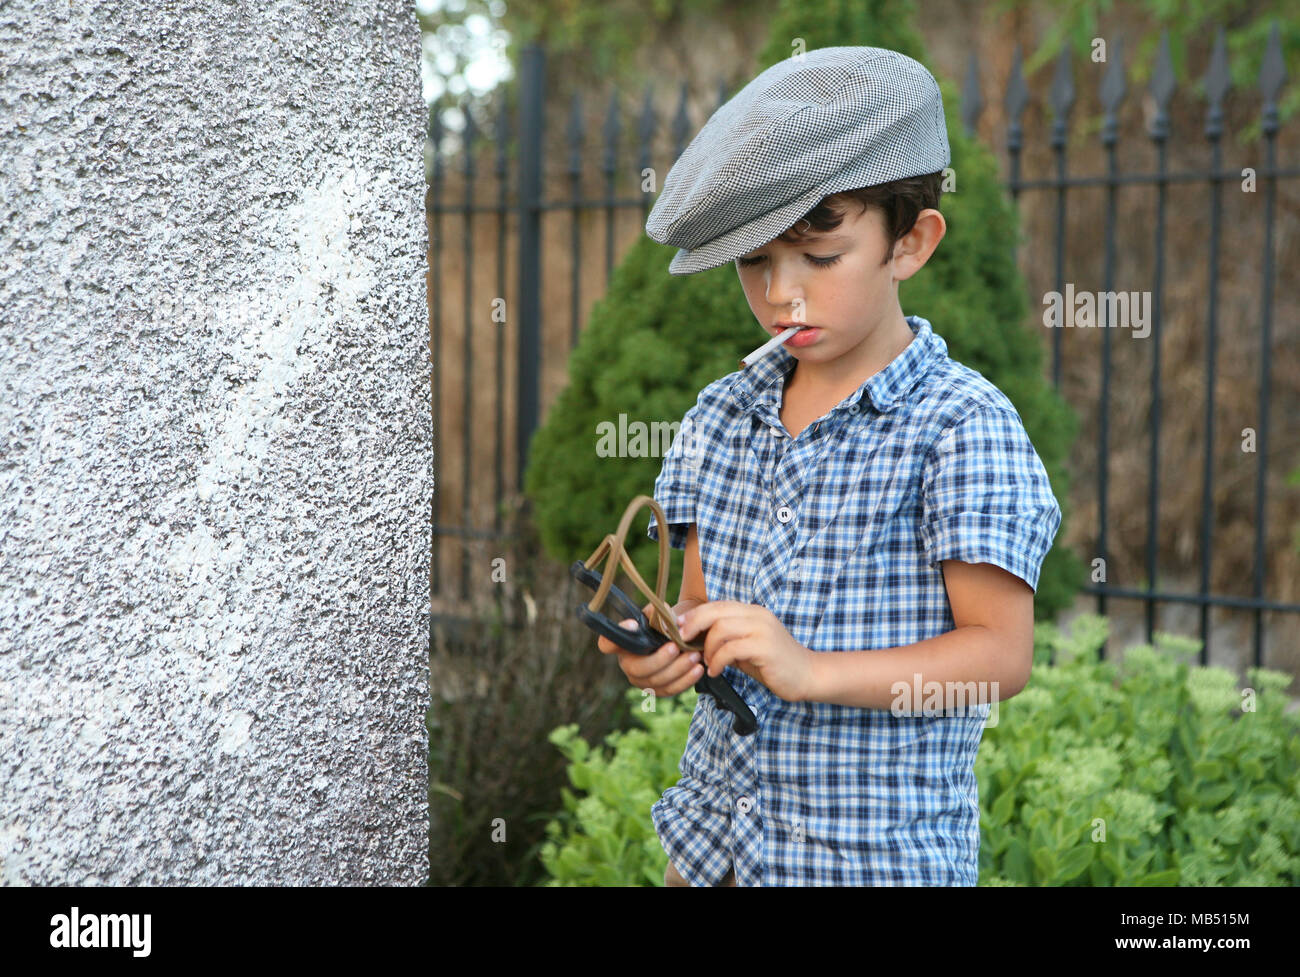 Boy with sigarette and coppola hat prepares to shot with the sling, Italy - Stock Image